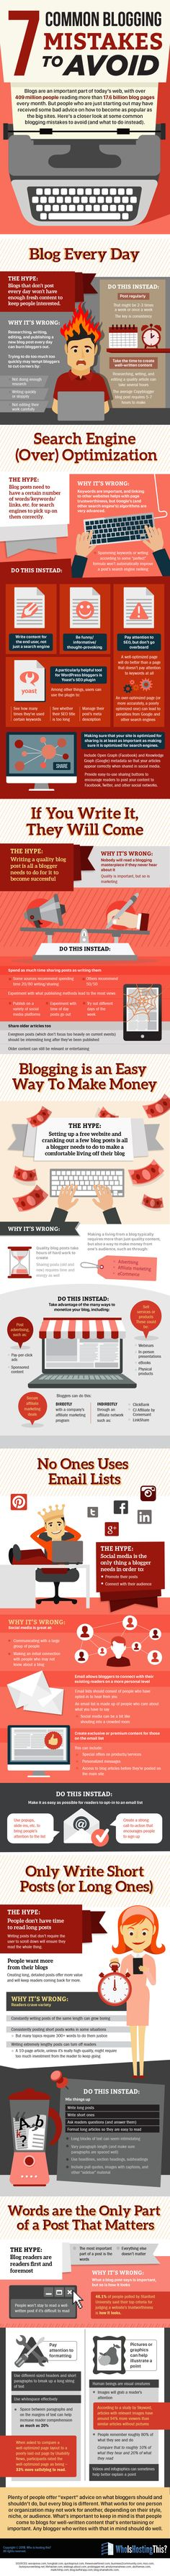 7 Common Blogging Mistakes To Avoid - #infographic